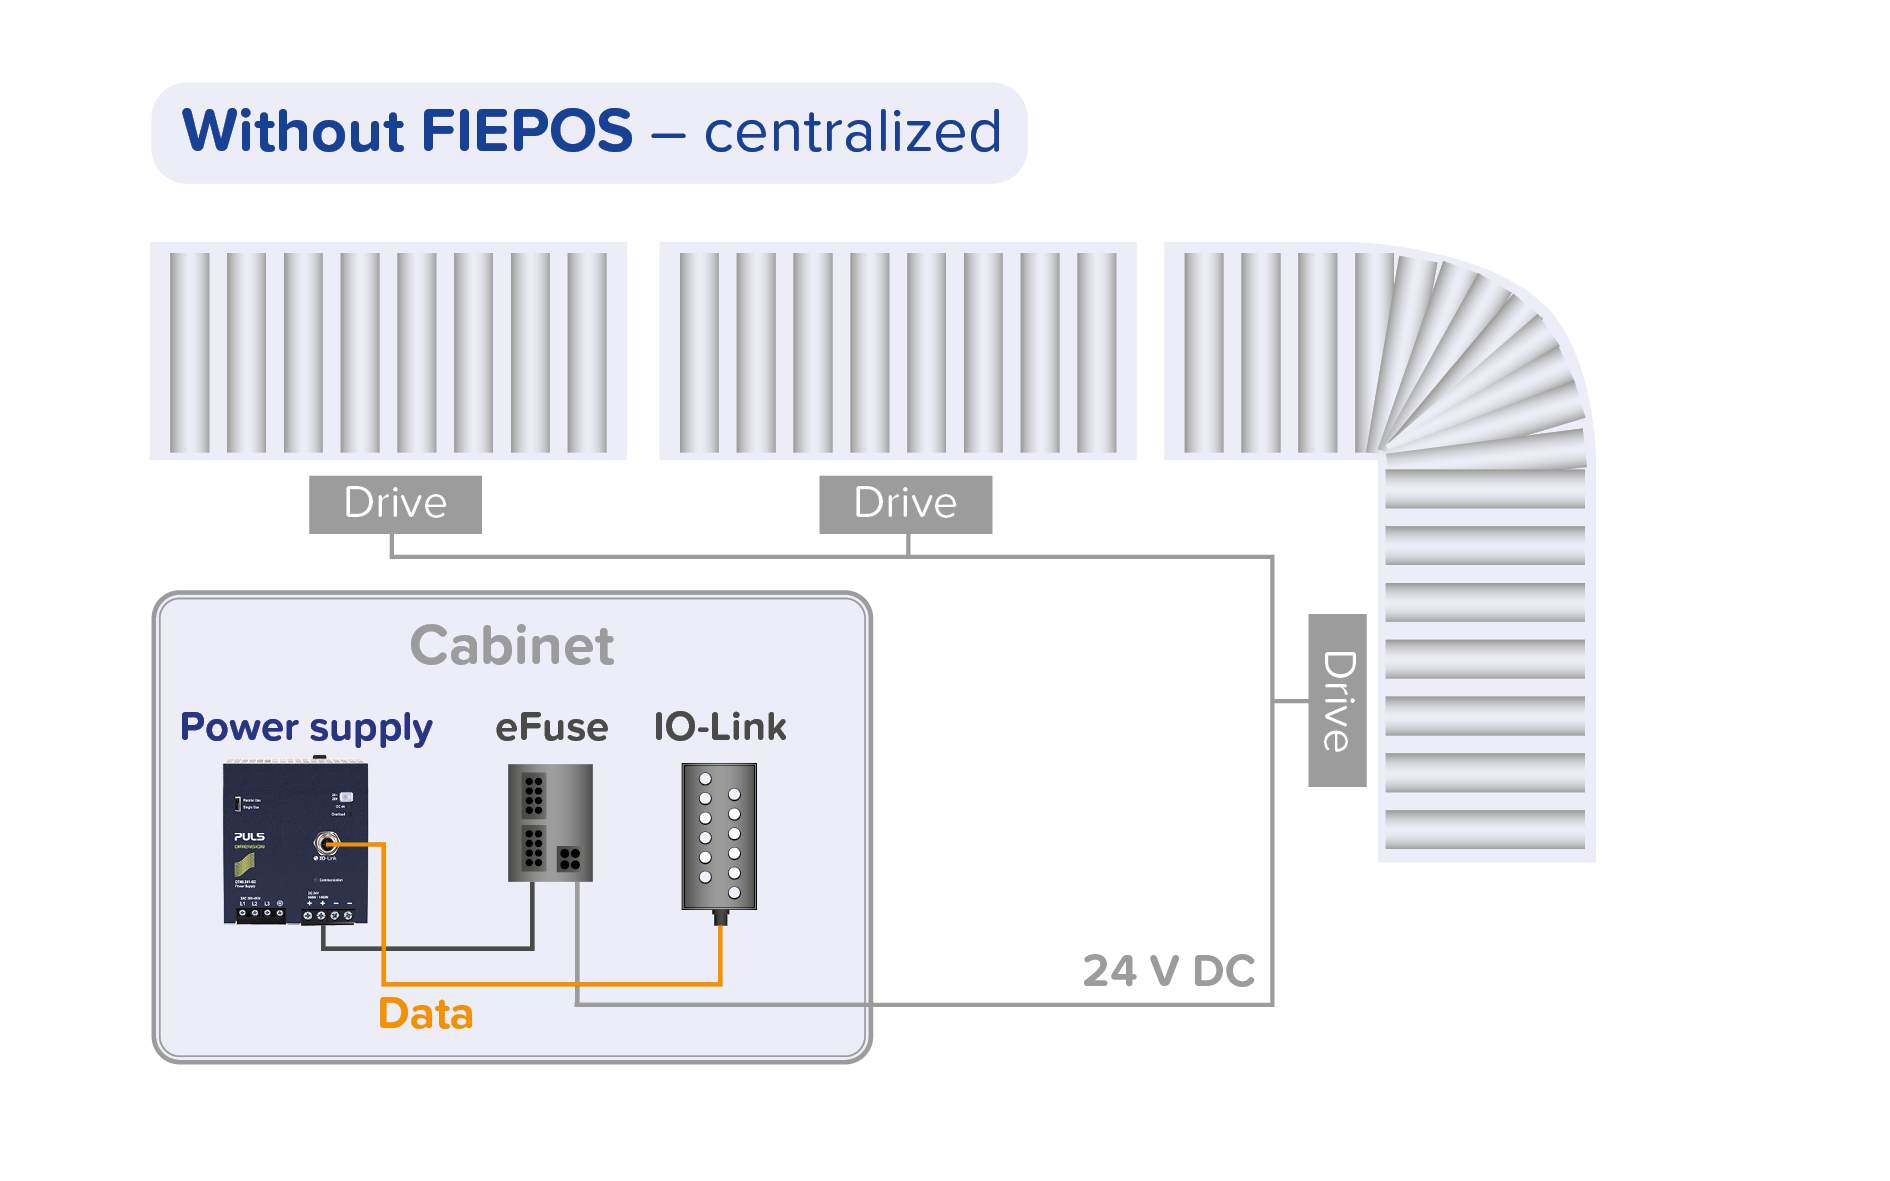 Centralized power supply - without FIEPOS field power supplies